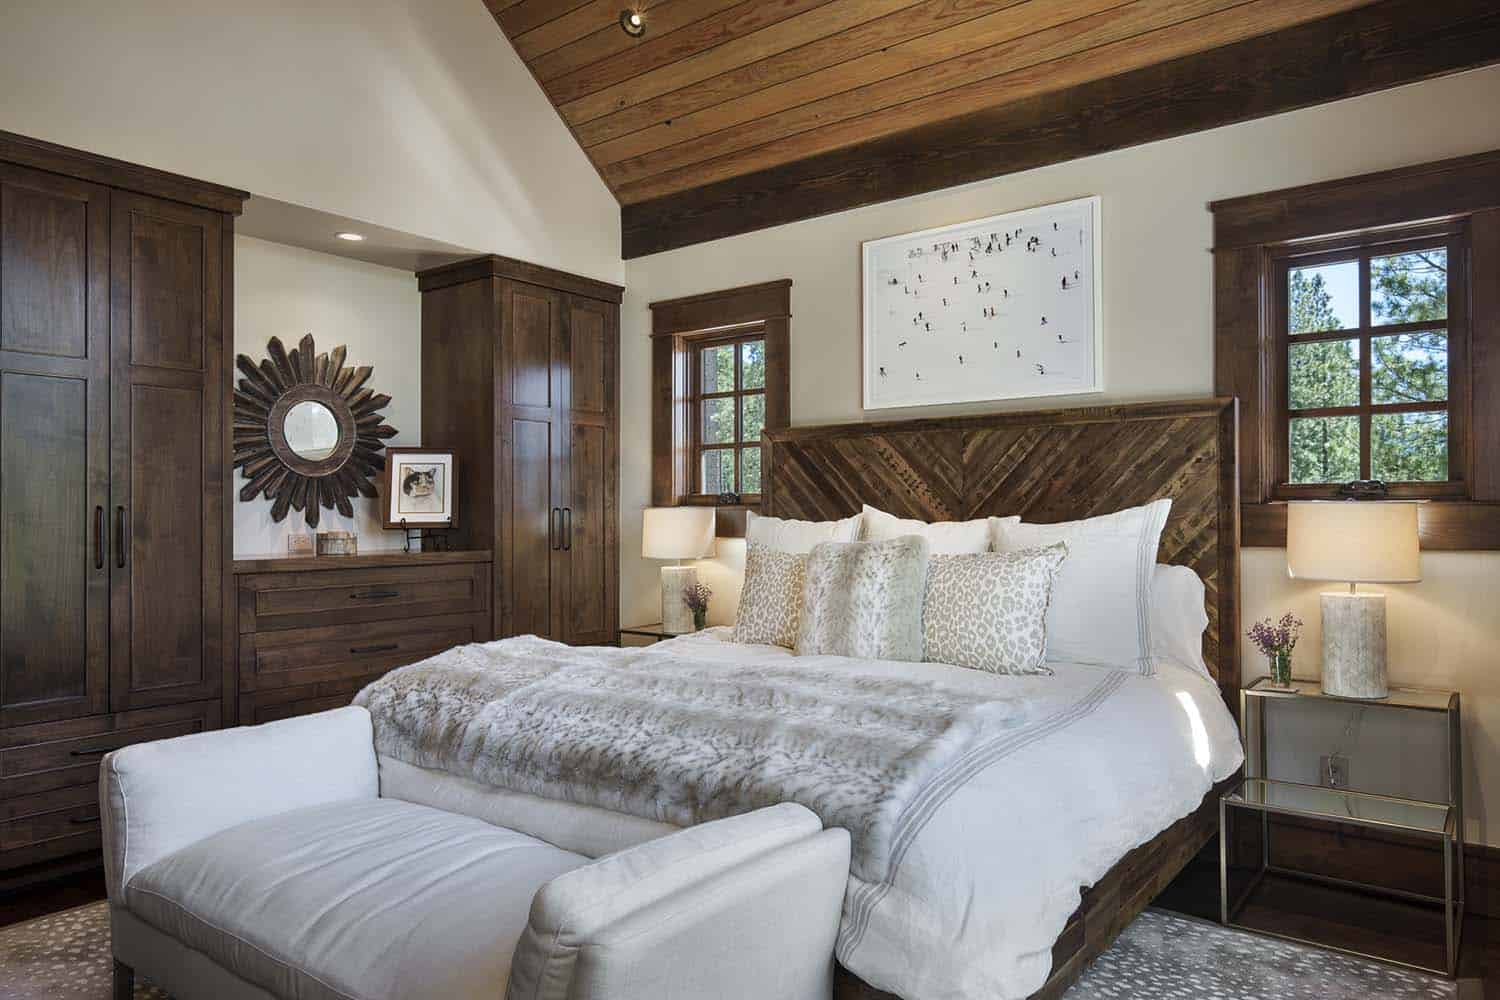 Rustic Mountain Retreat-Kelly Stone Architects-16-1 Kindesign